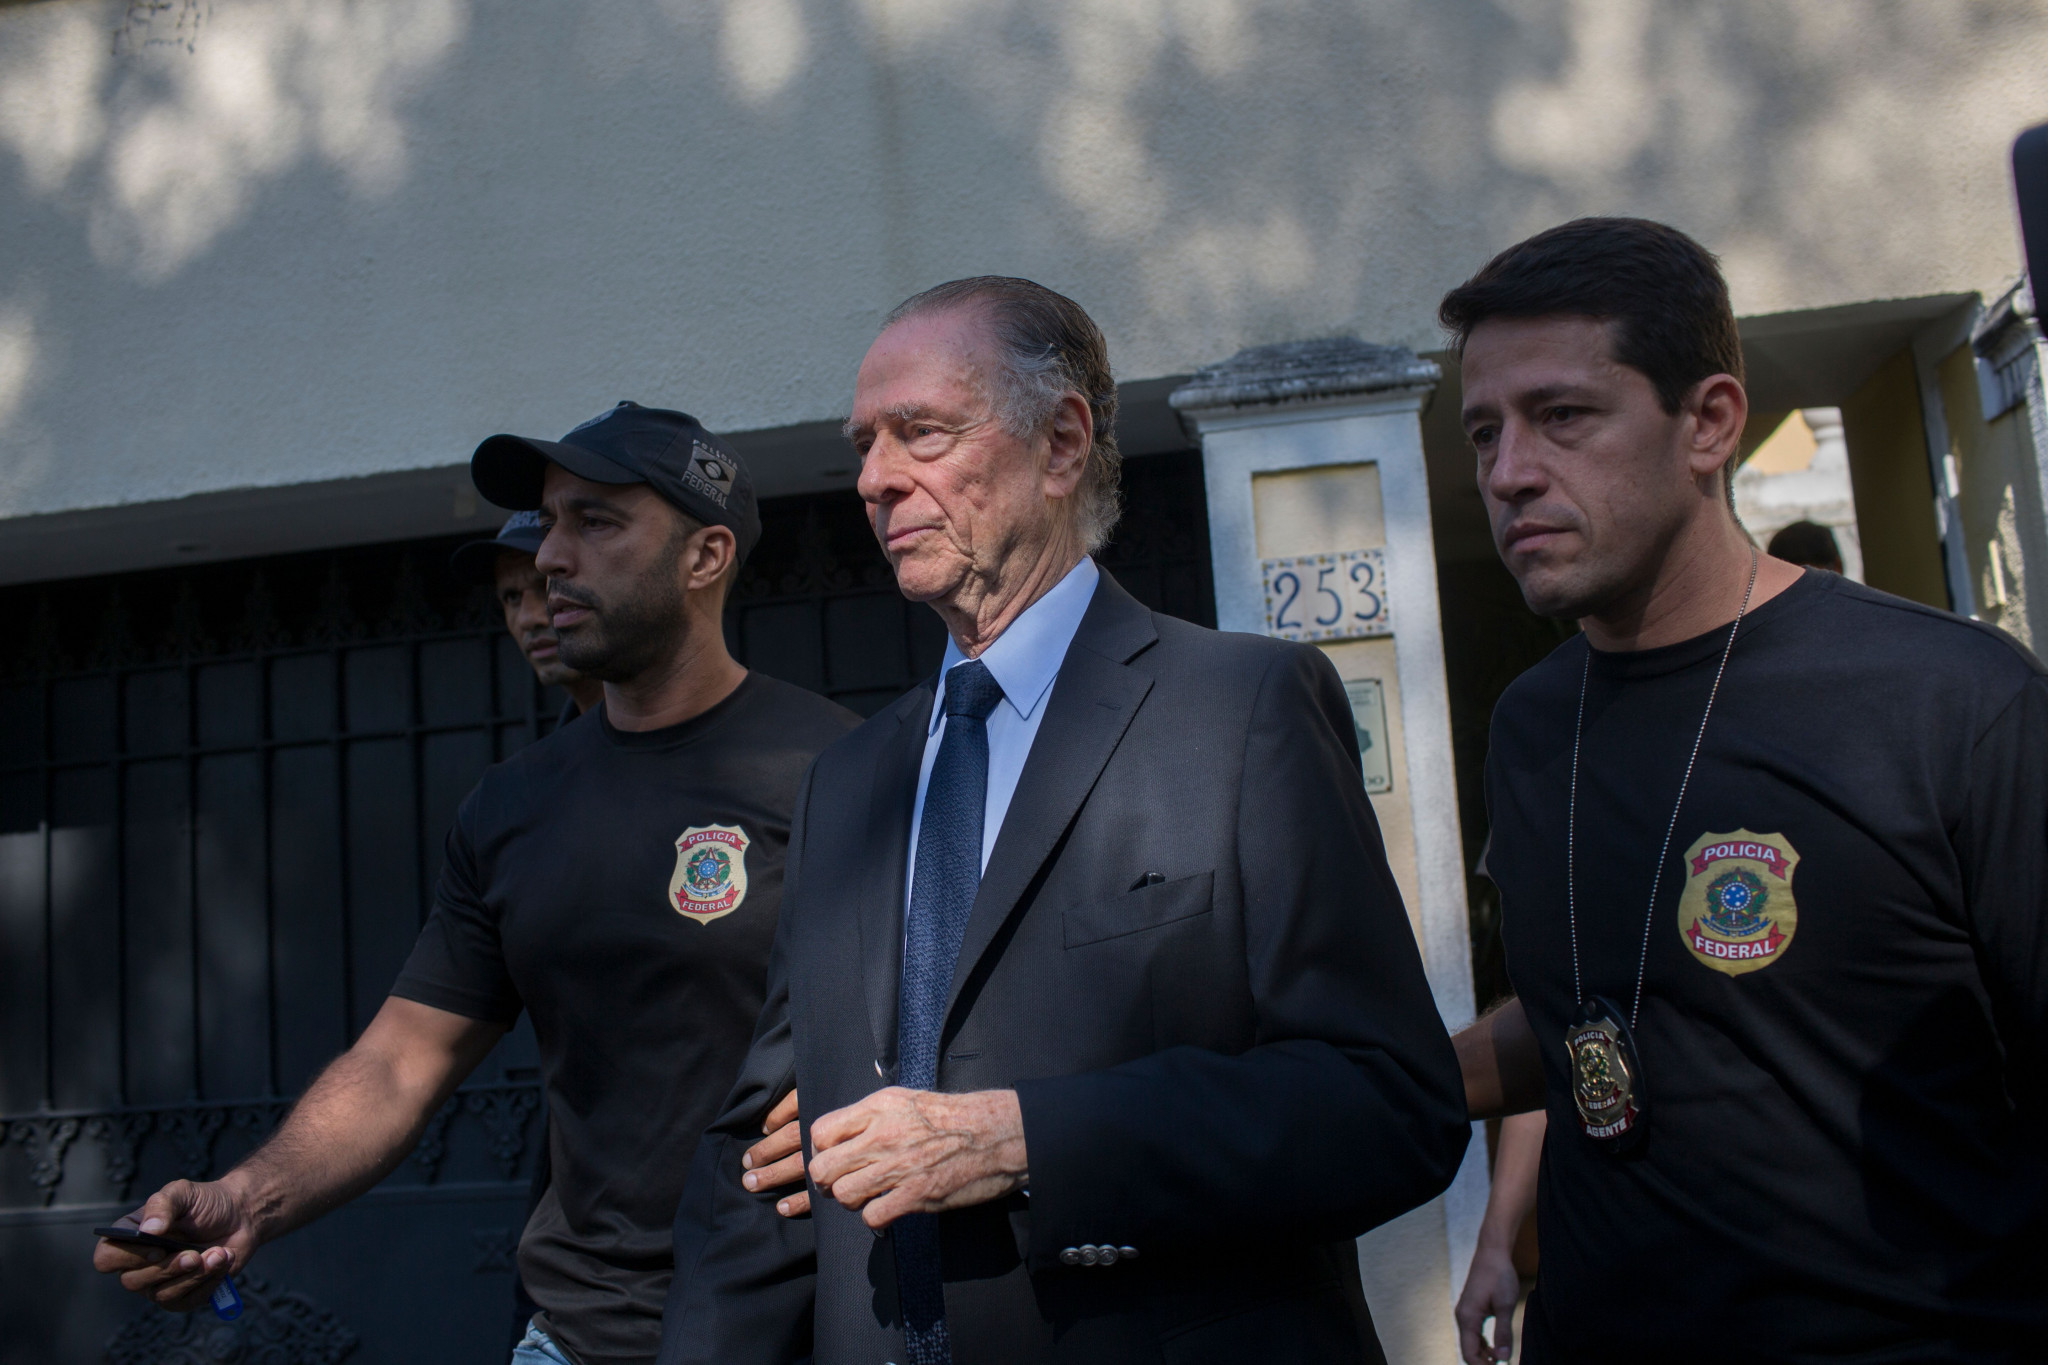 Nuzman appears in court to deny involvement in Rio 2016 vote-buying scheme